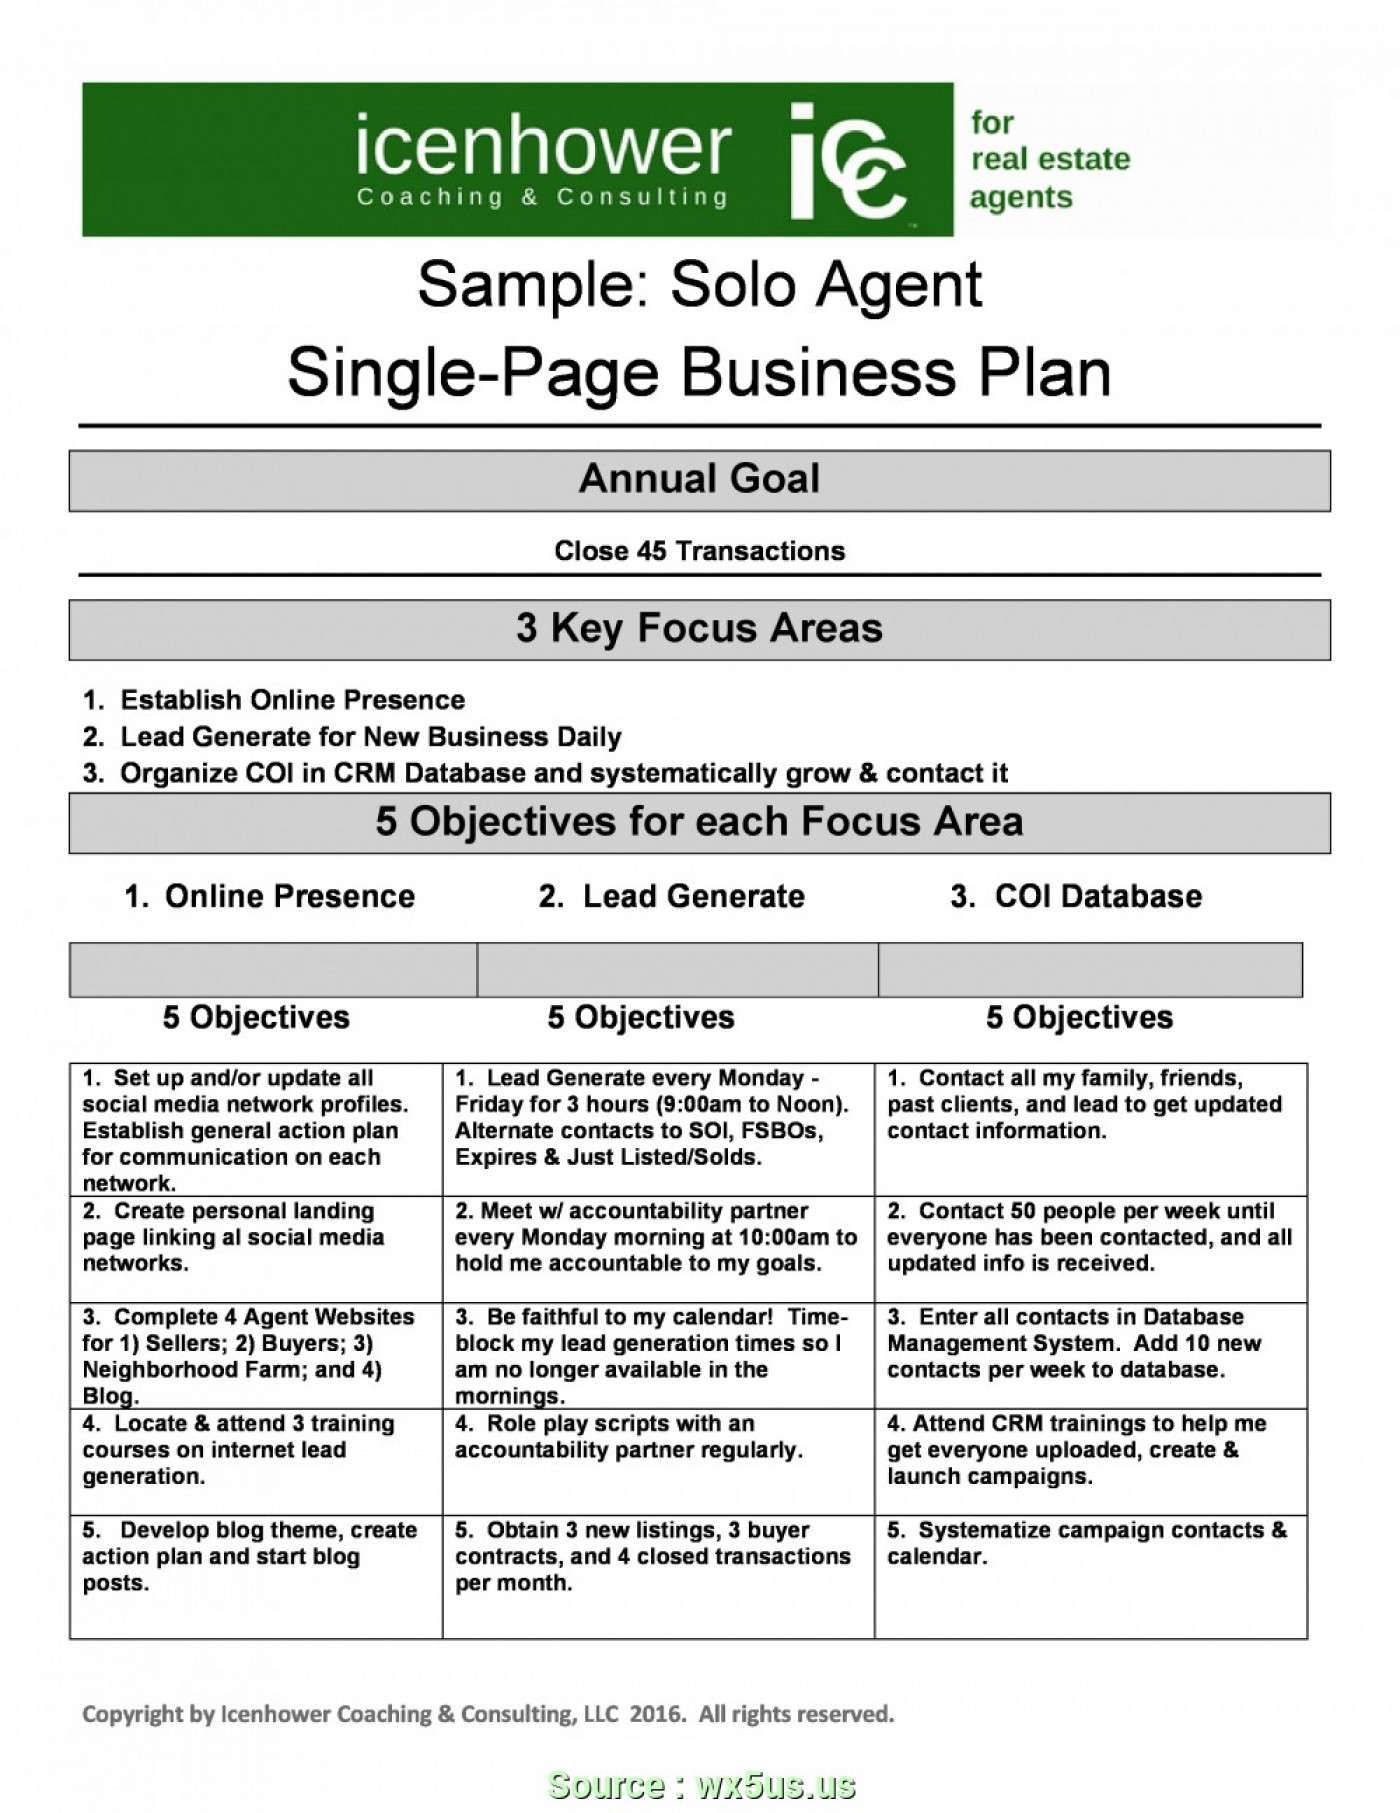 5 Page Business Plan Template 031 Year Business Plan Strategic Template Beauti Real Estate Business Plan Real Estate Agent Business Plan Business Plan Template